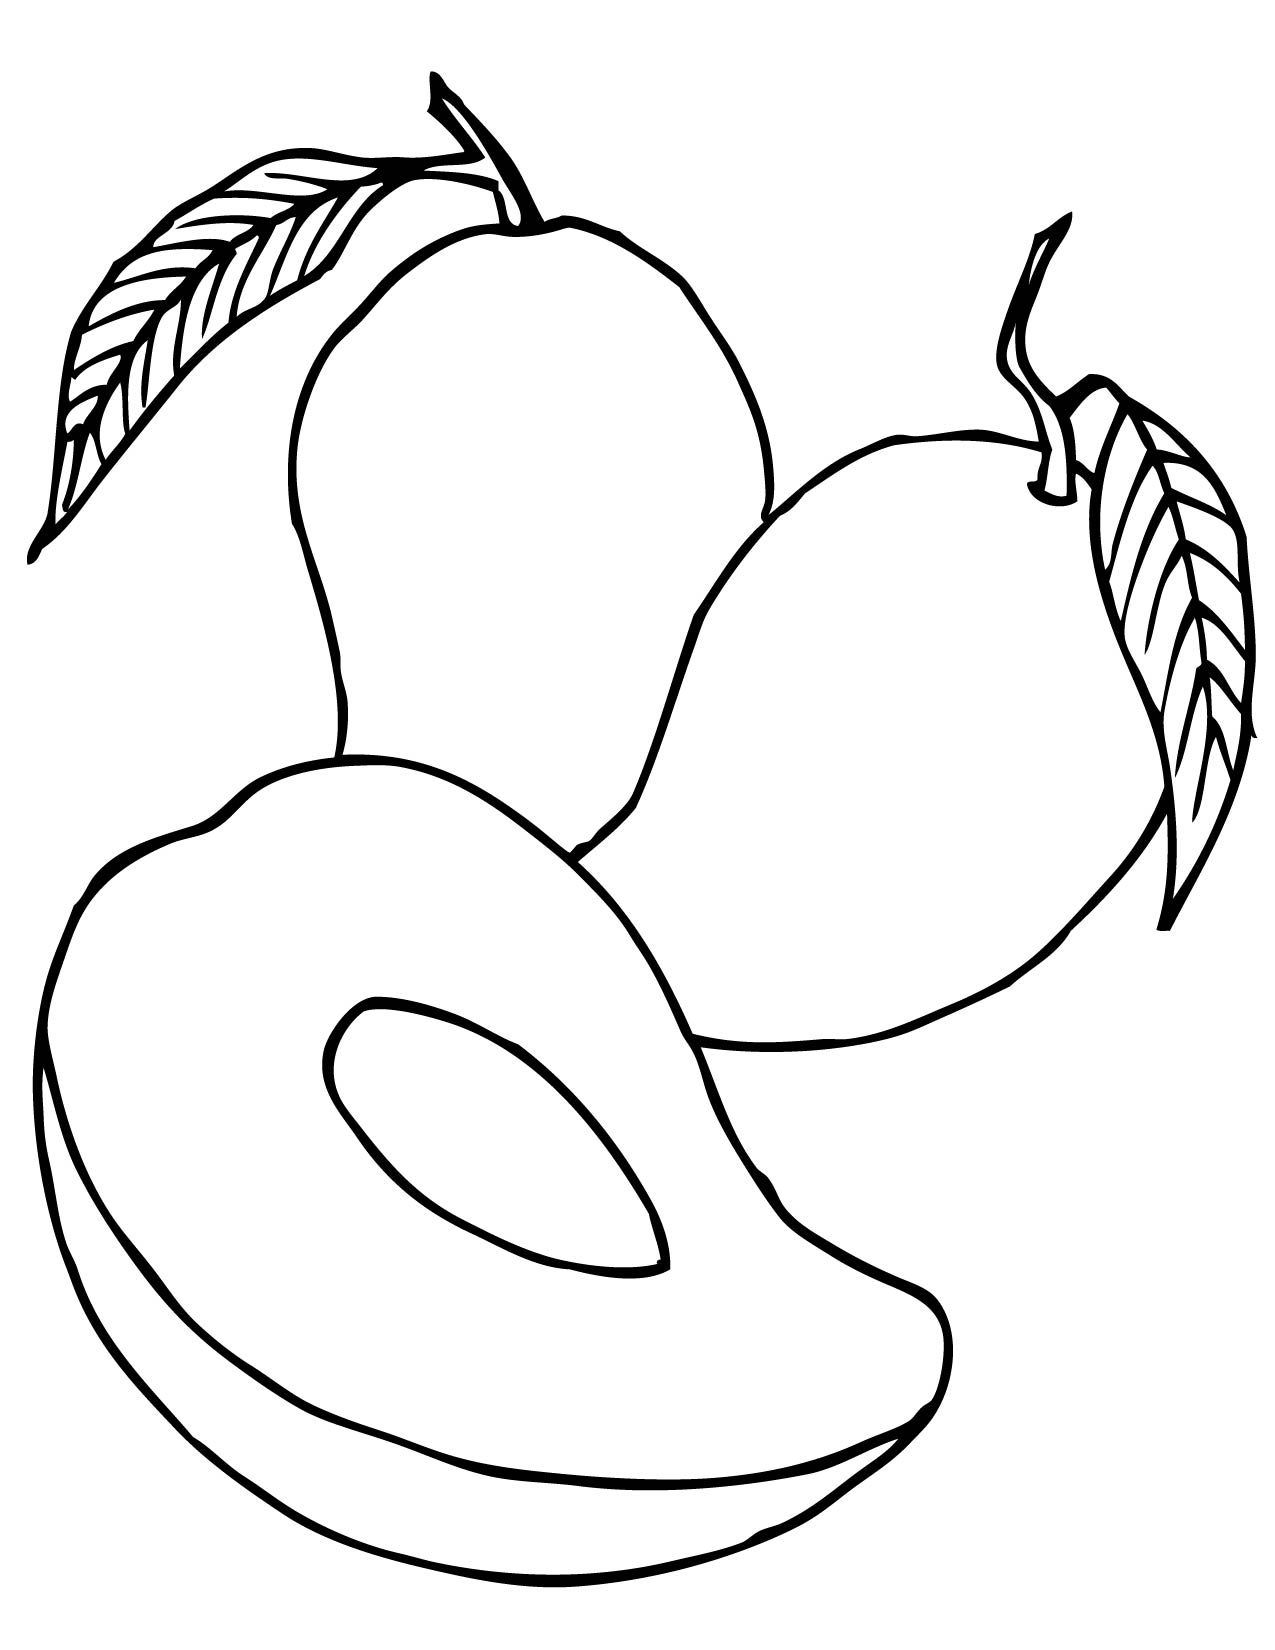 tropical fruits coloring pages tropical fruits coloring pages tropical pages coloring fruits